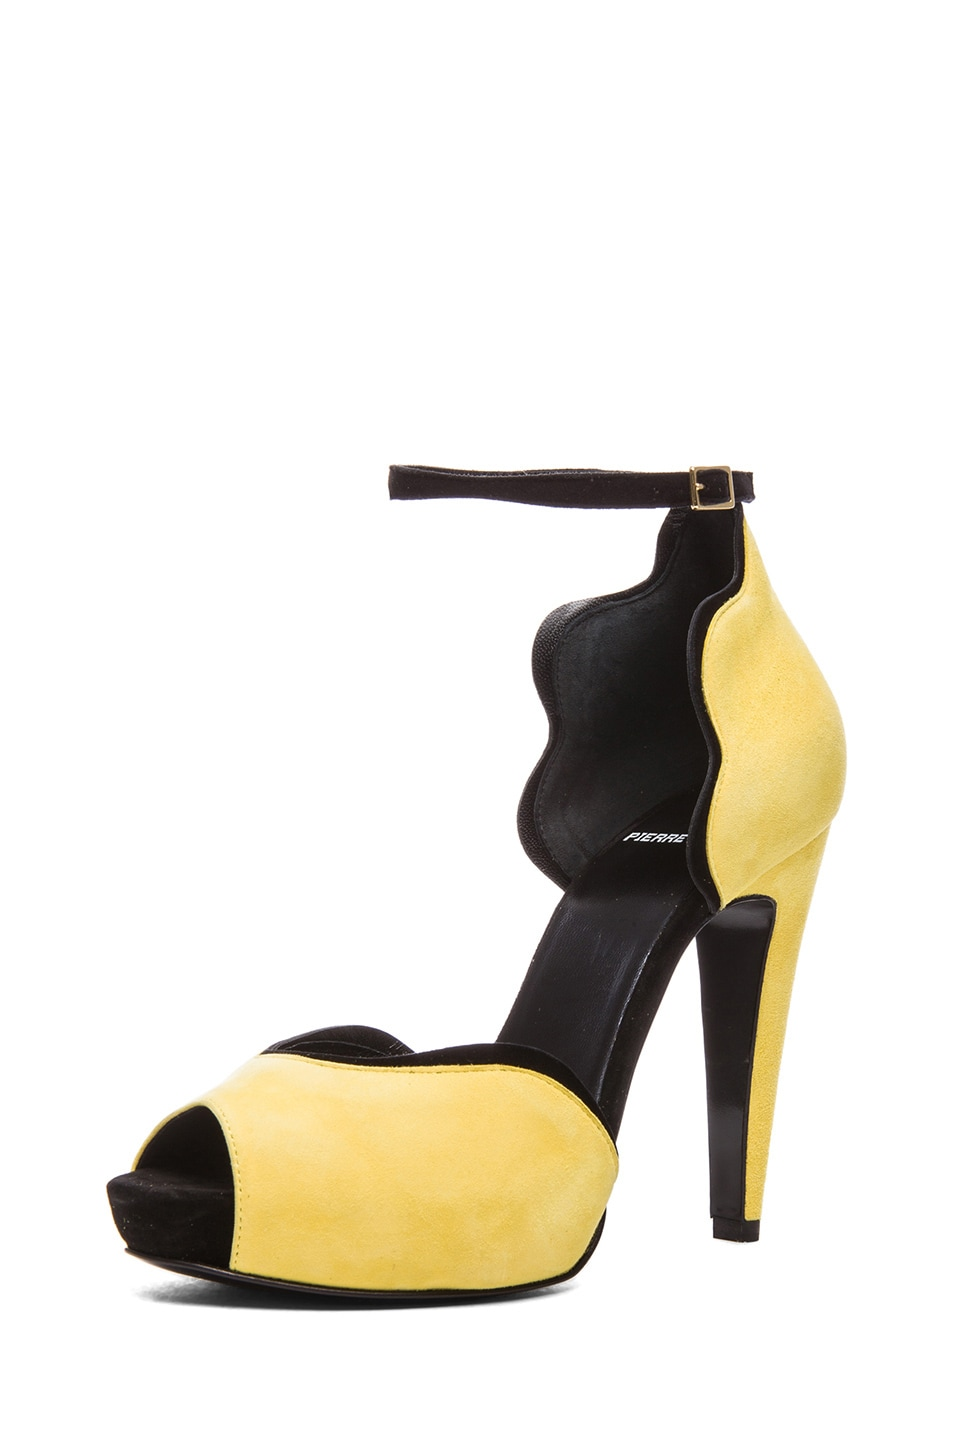 Image 2 of Pierre Hardy Sottsass Kid Suede Heels in Yellow & Black